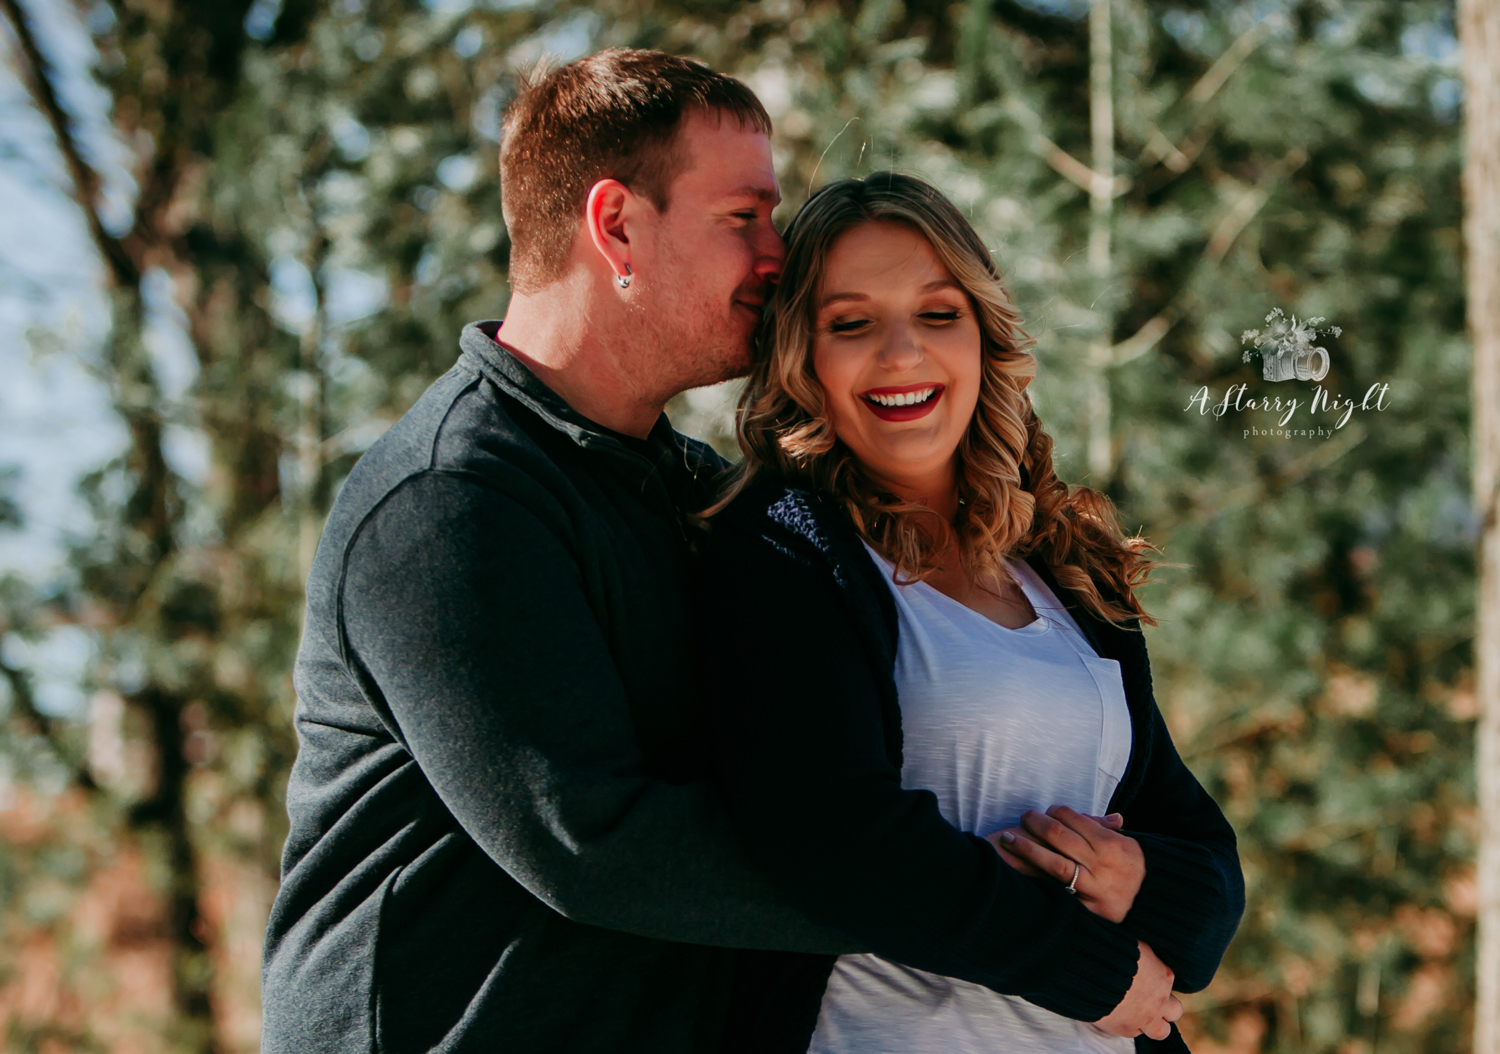 Engaged couple near Dow Gardens in Midland MI for their Engagement Couples Sesson